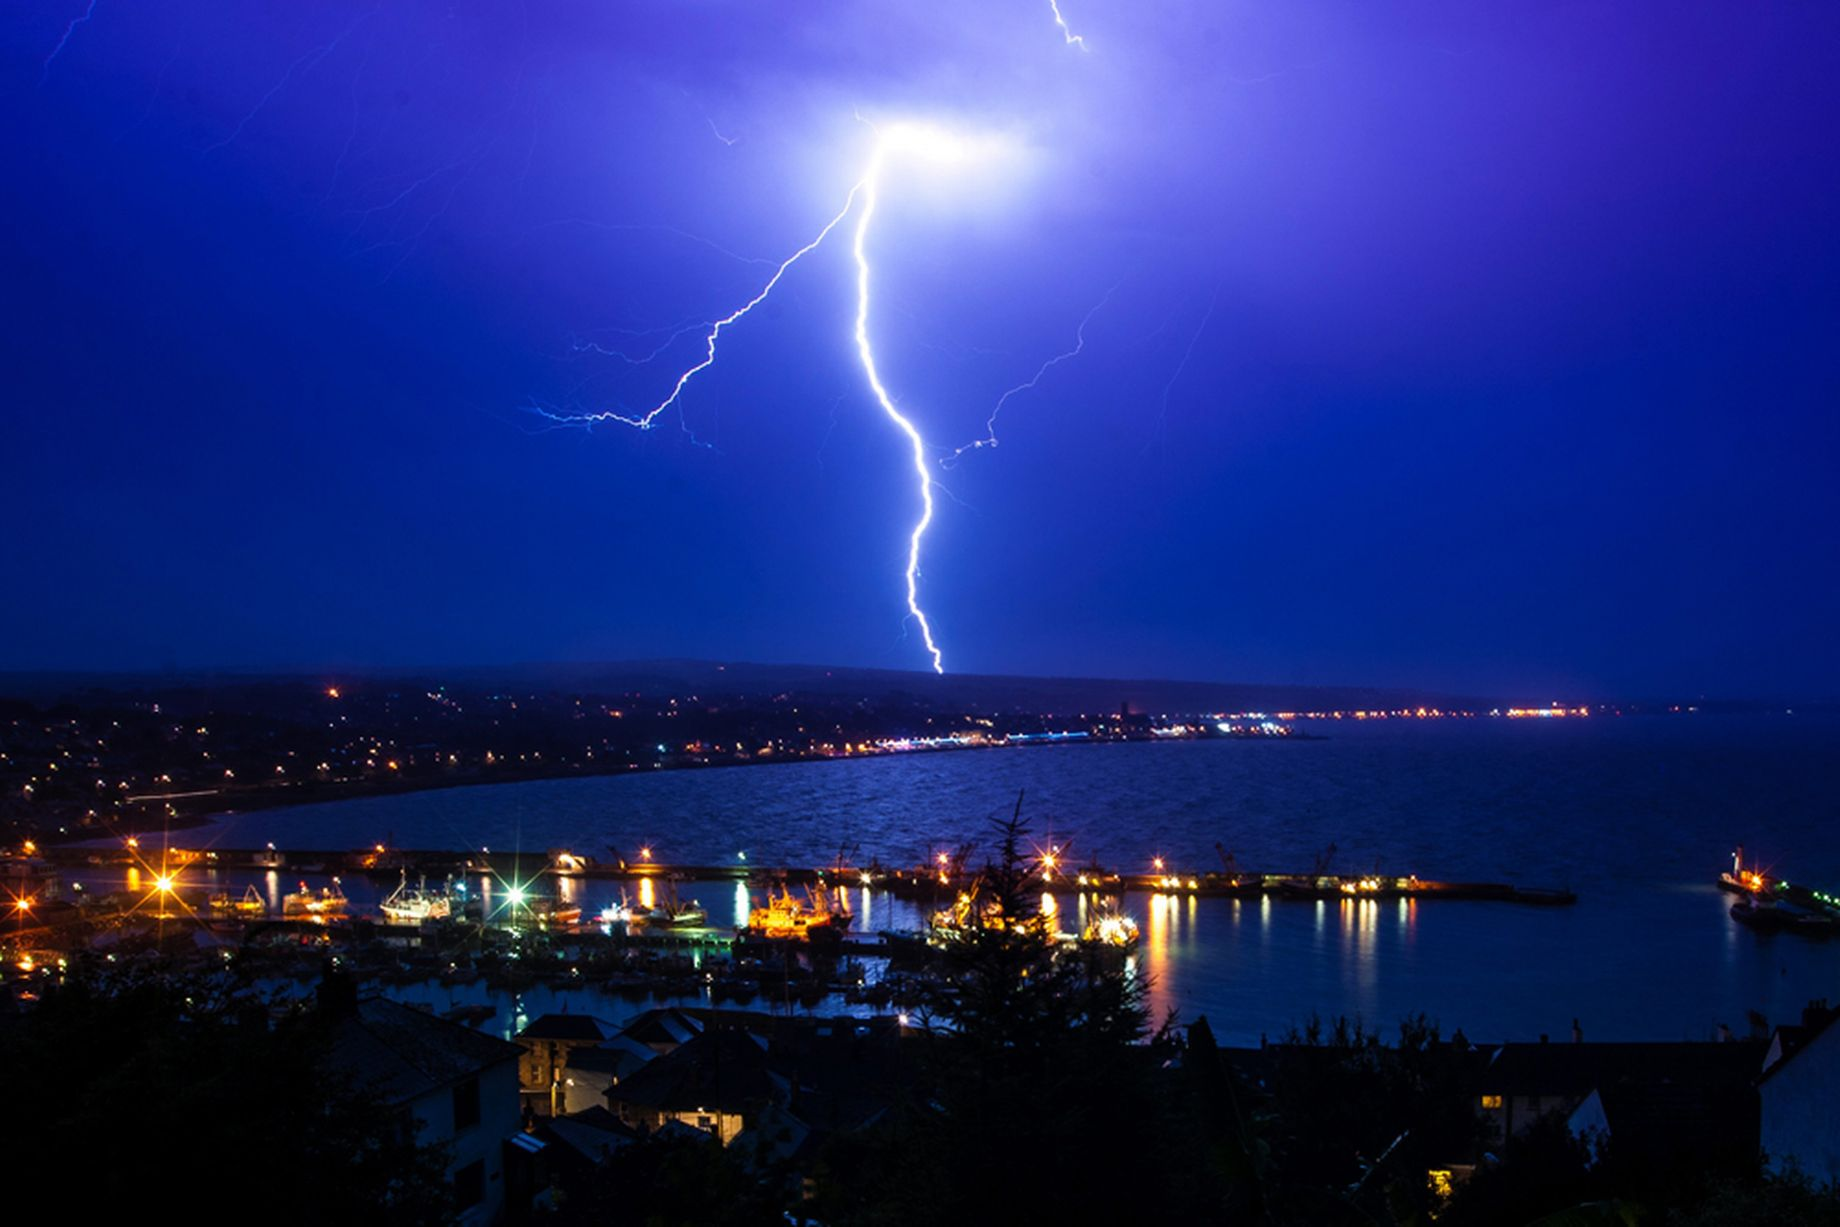 Hd Irish Wallpaper Lightning In The Skies As An Electric Storm Passes Britain